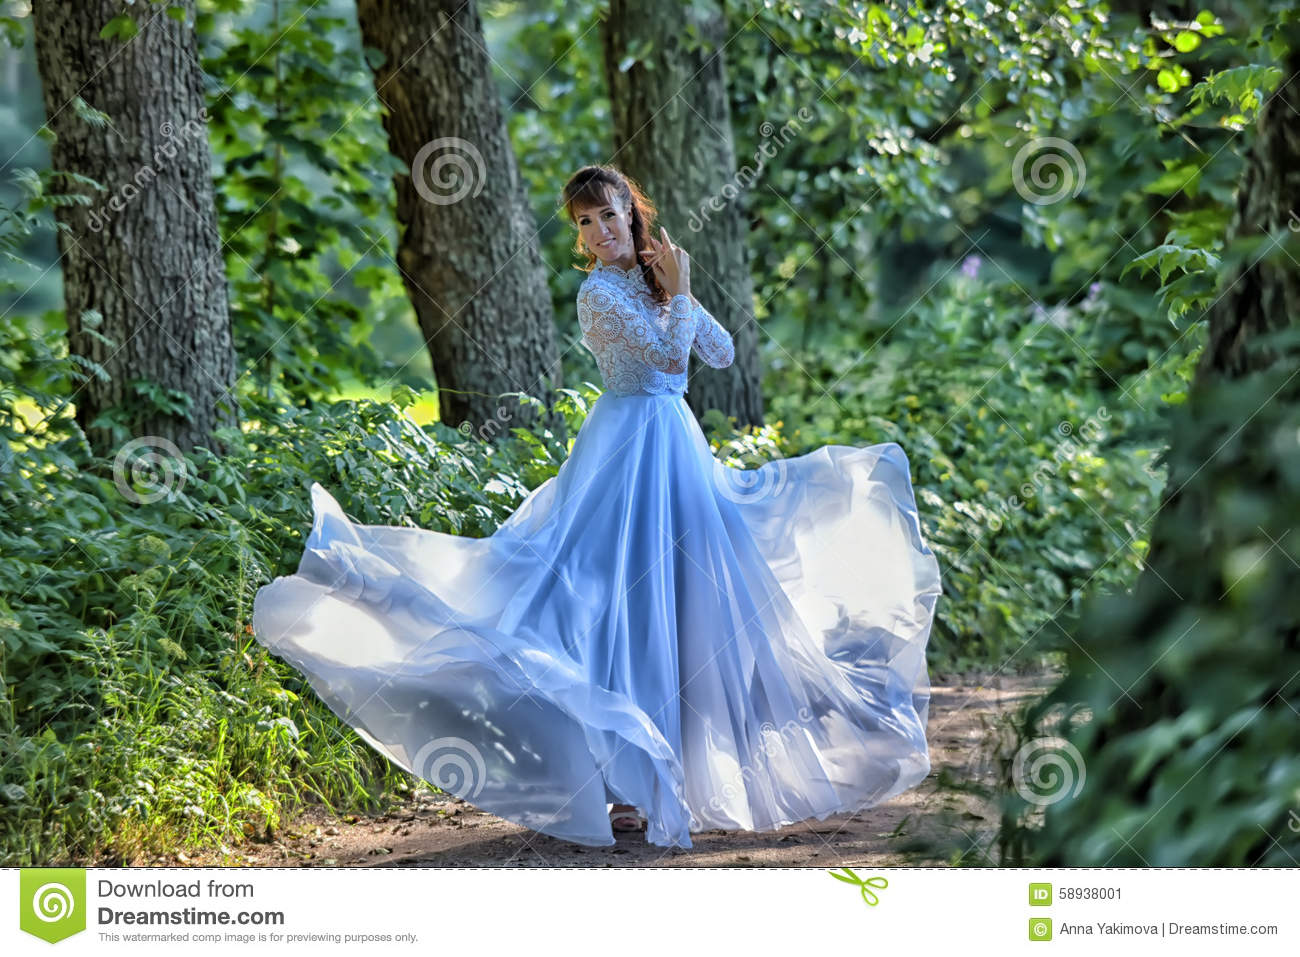 Beauty woman with white dress flying